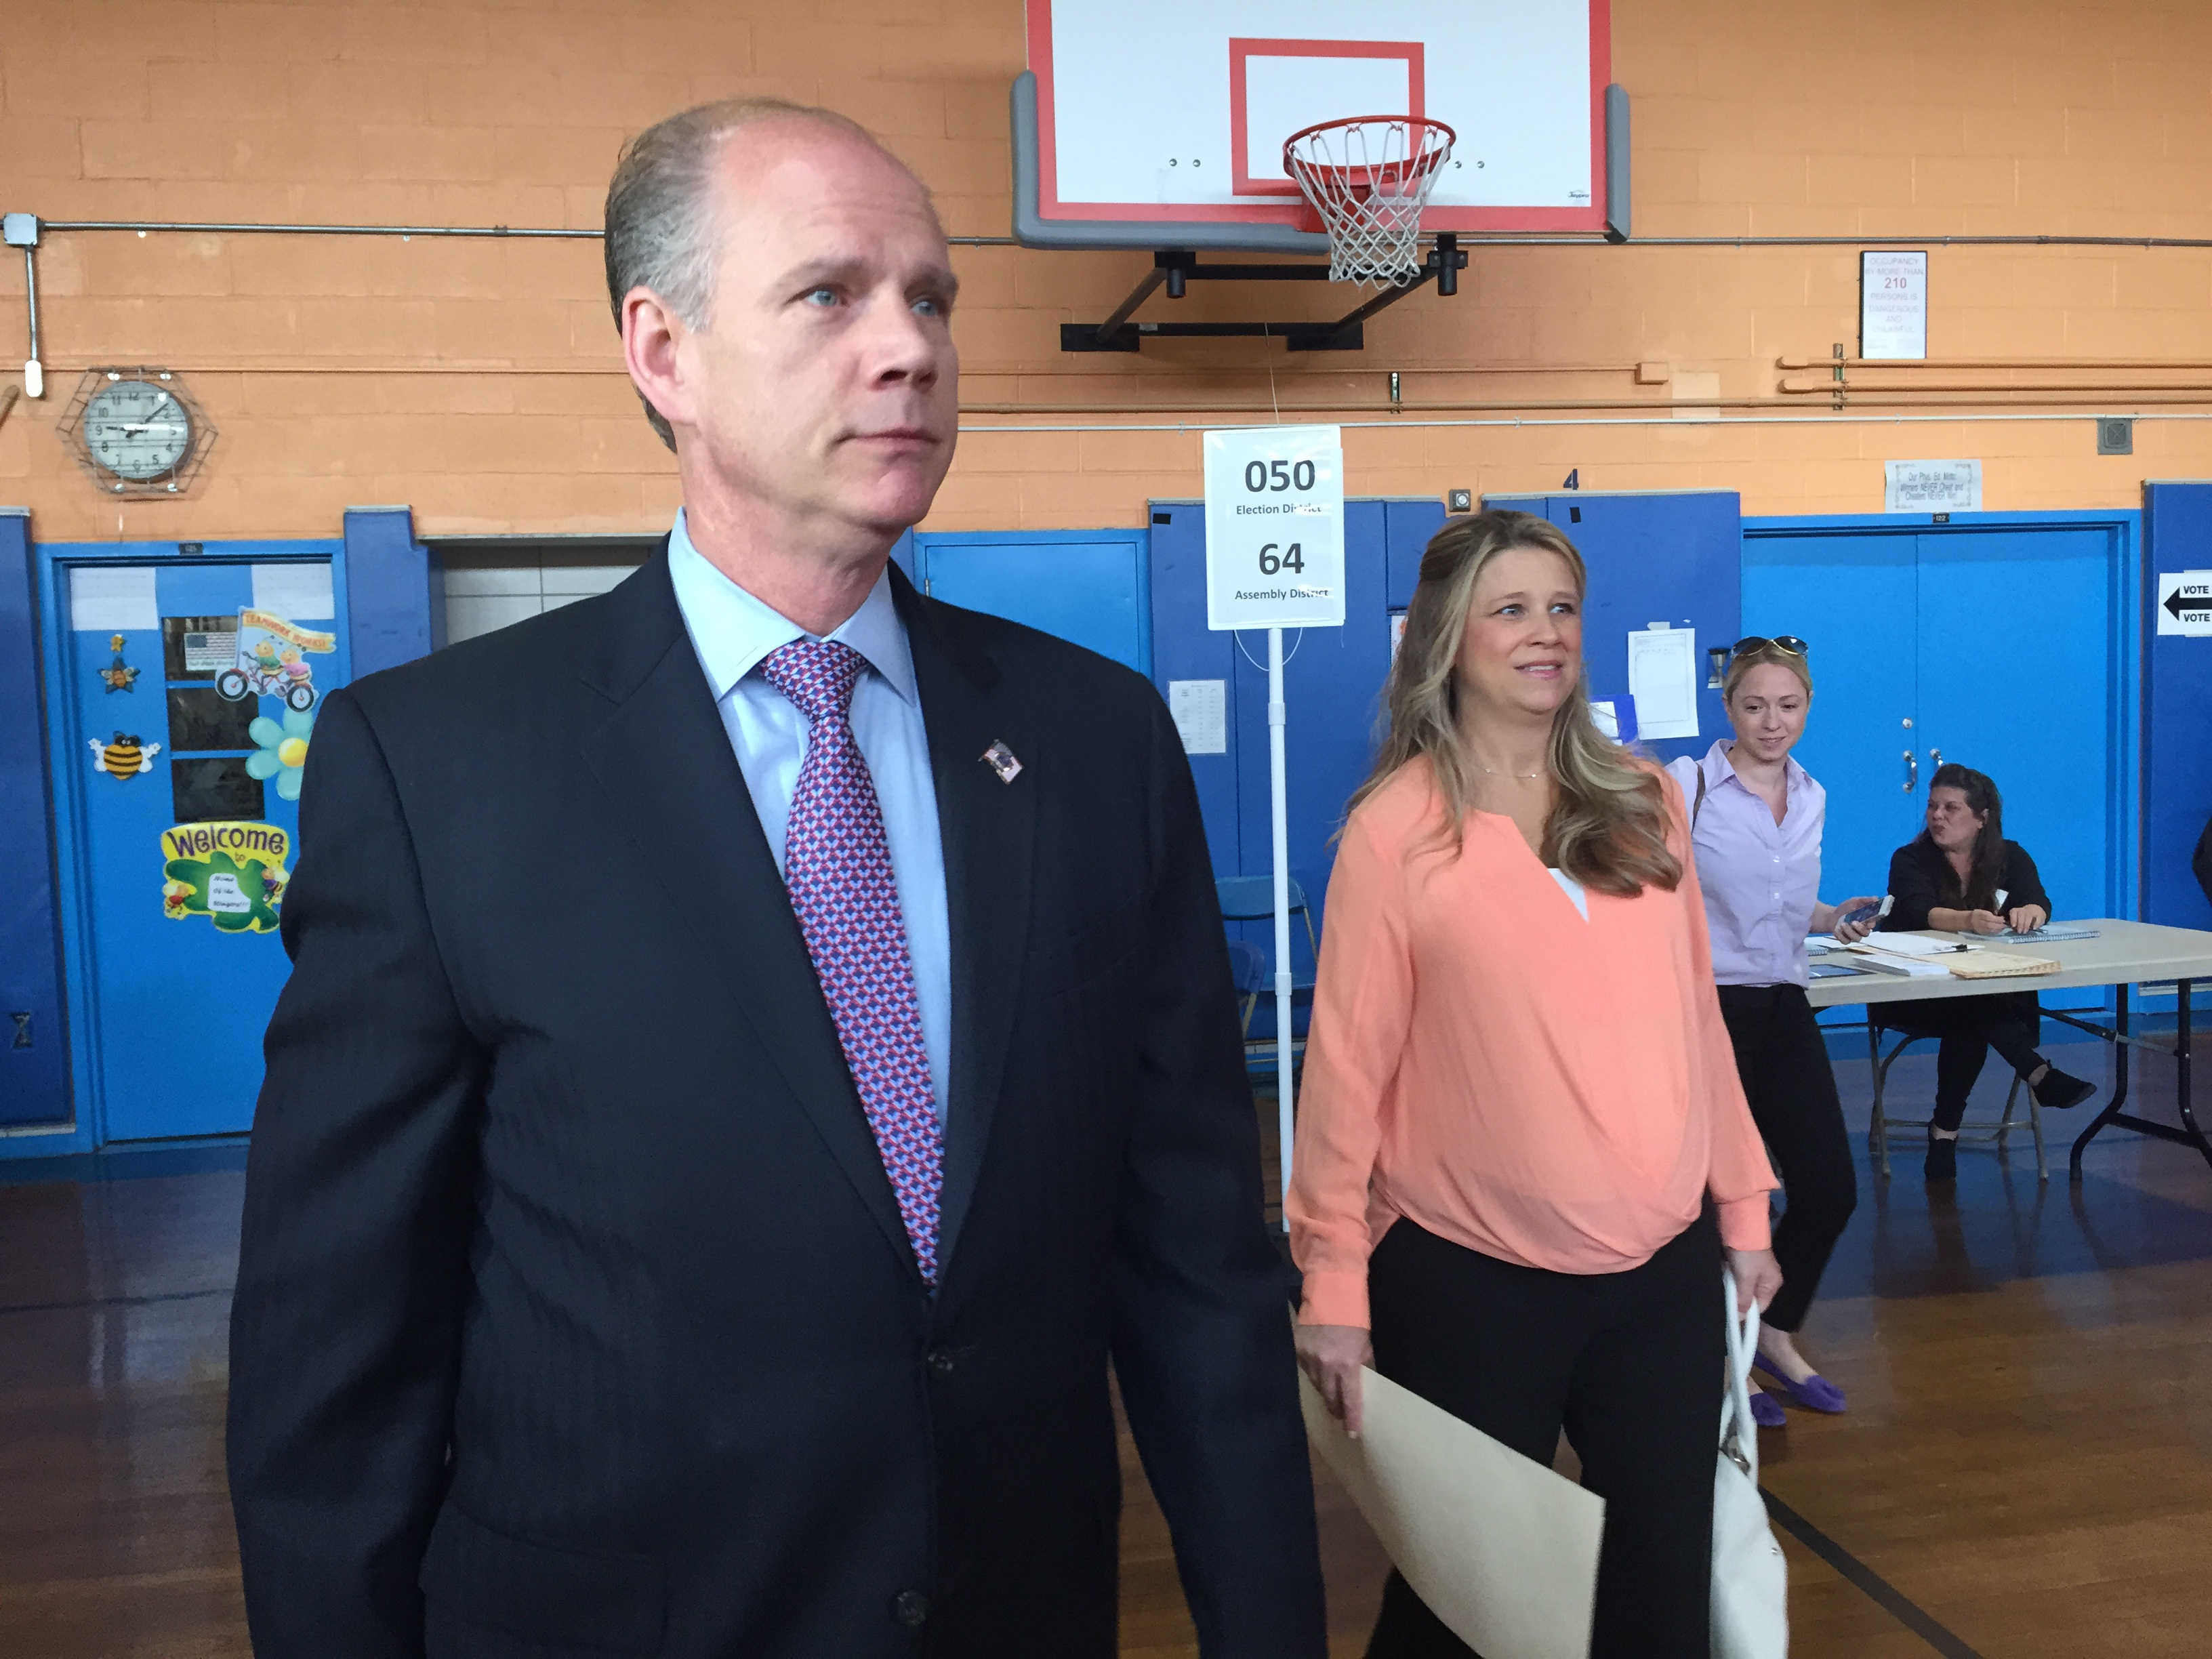 Staten Island District Attorney Daniel Donovan and his fiancee Serena Stonick vote on Staten Island. (Photo: Jillian Jorgensen/New York Observer)